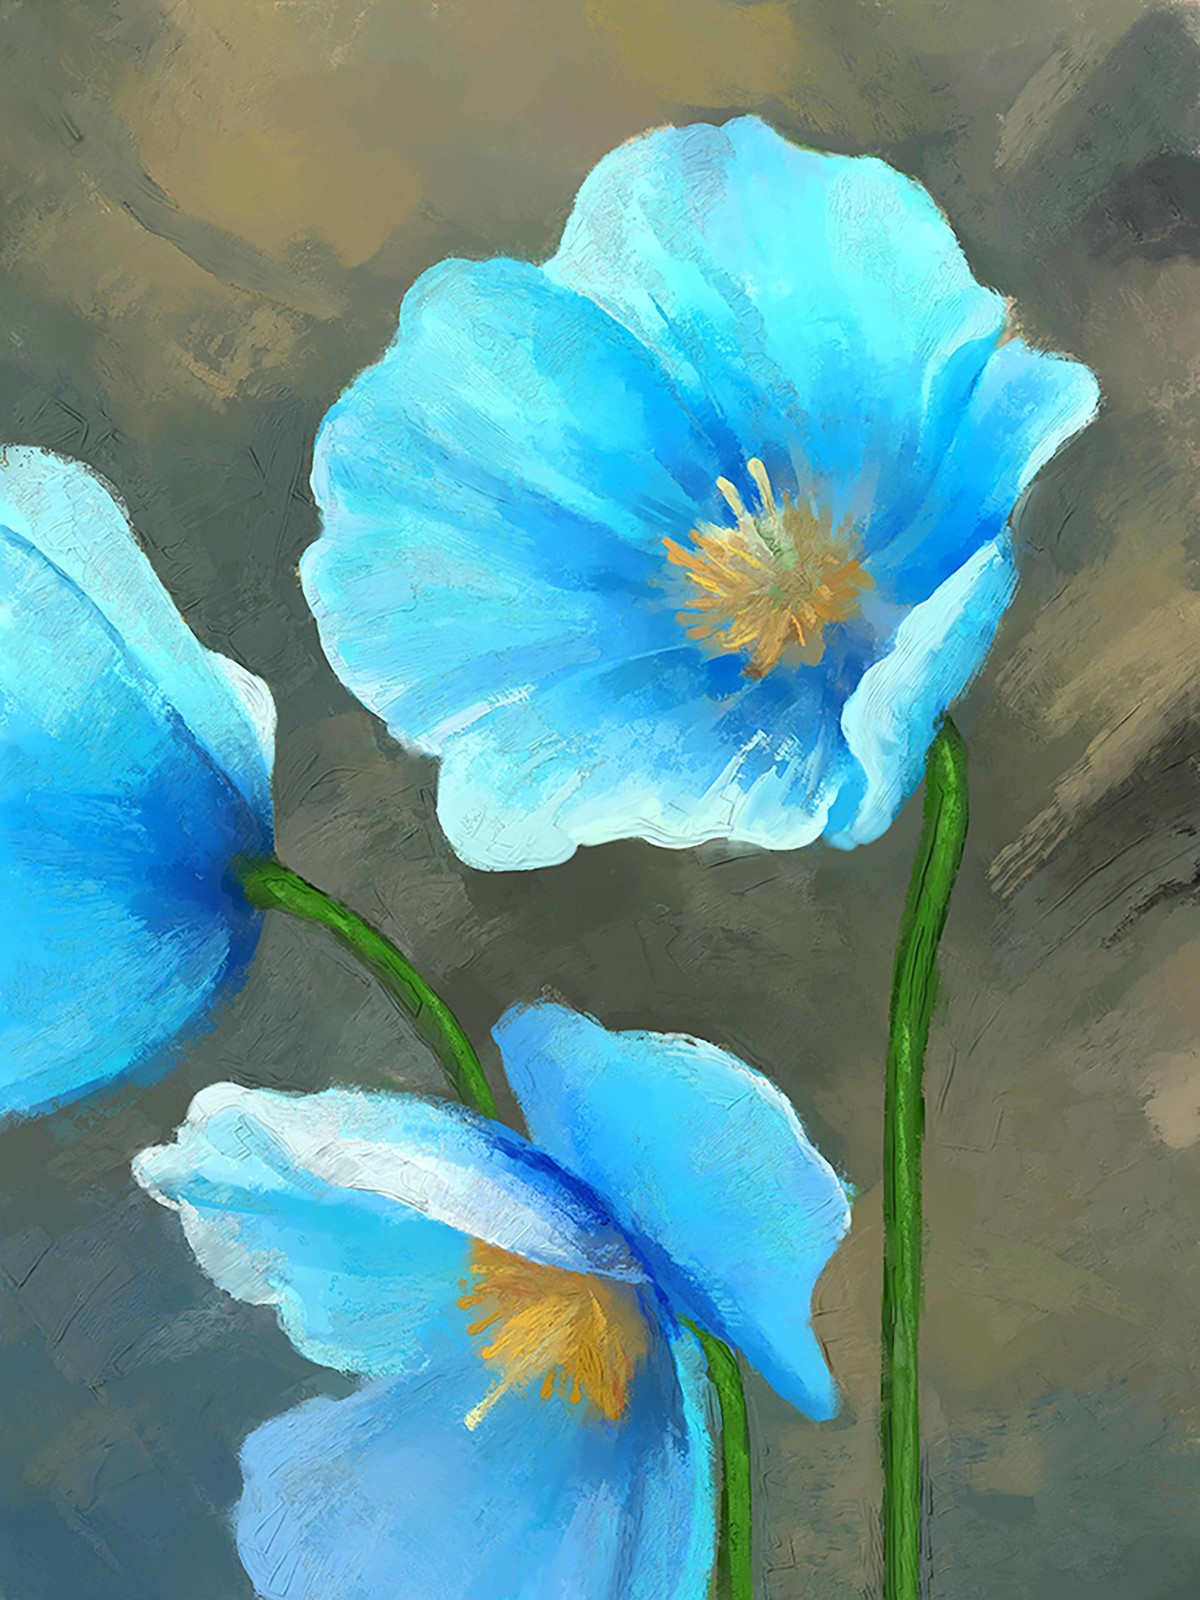 Blue Flower 75 By Artist The Print Studio Digital Painting Mojarto 269048